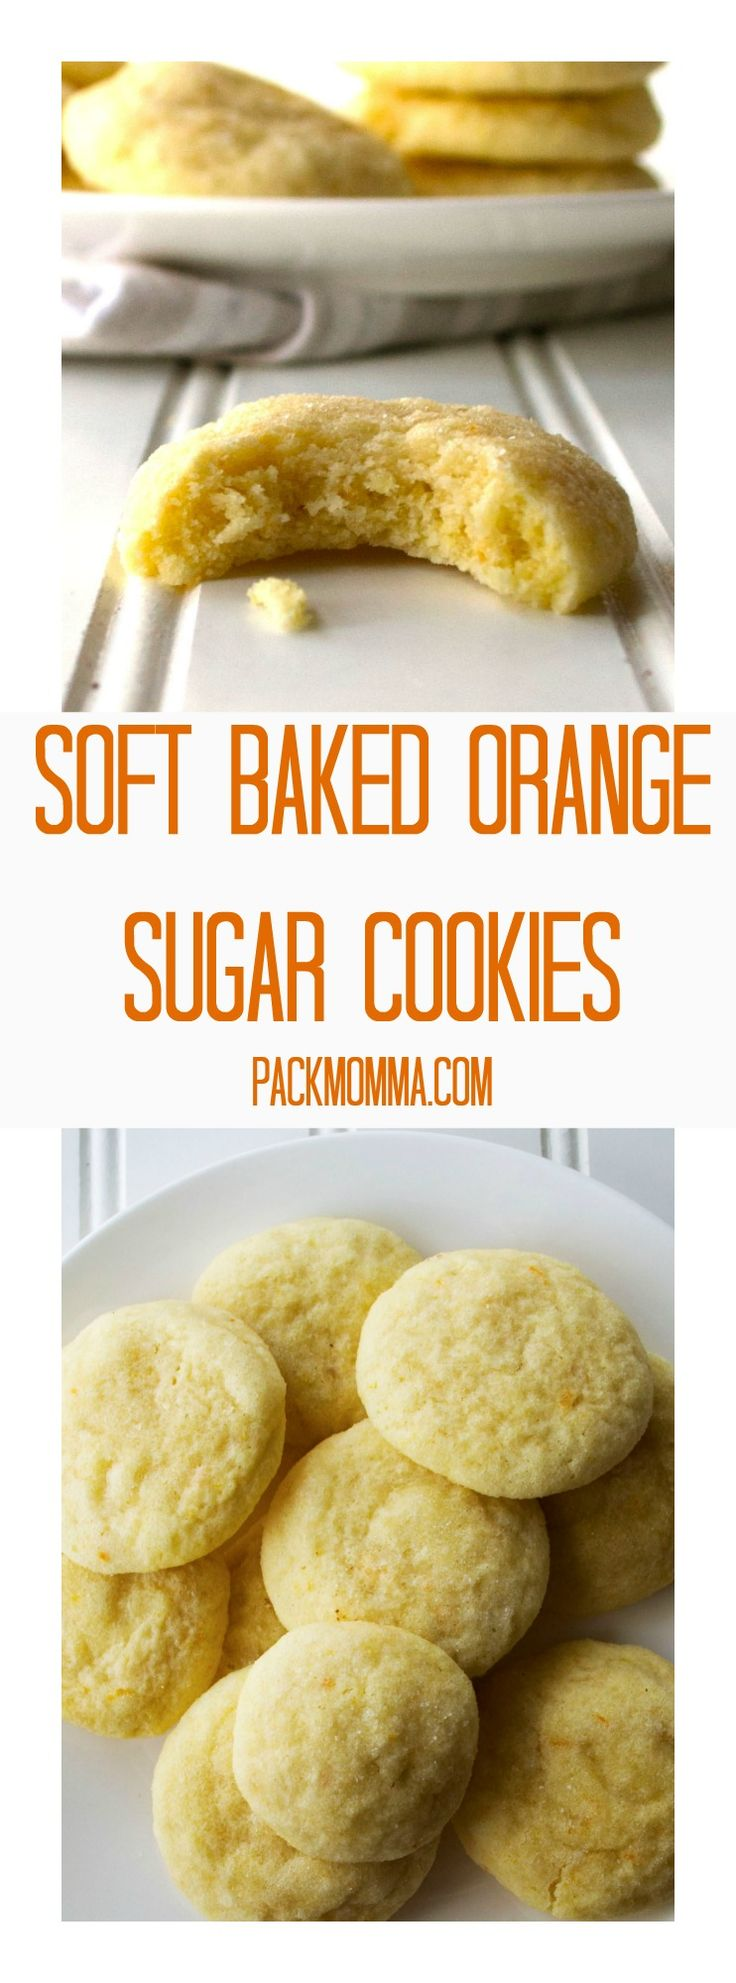 Soft Baked Orange Sugar Cookies | Soft Baked Orange Sugar Cookies are soft sugar cookies that burst with orange flavor and are sure to be your new favorite sweet treat. | Pack Momma | www.packmomma.com